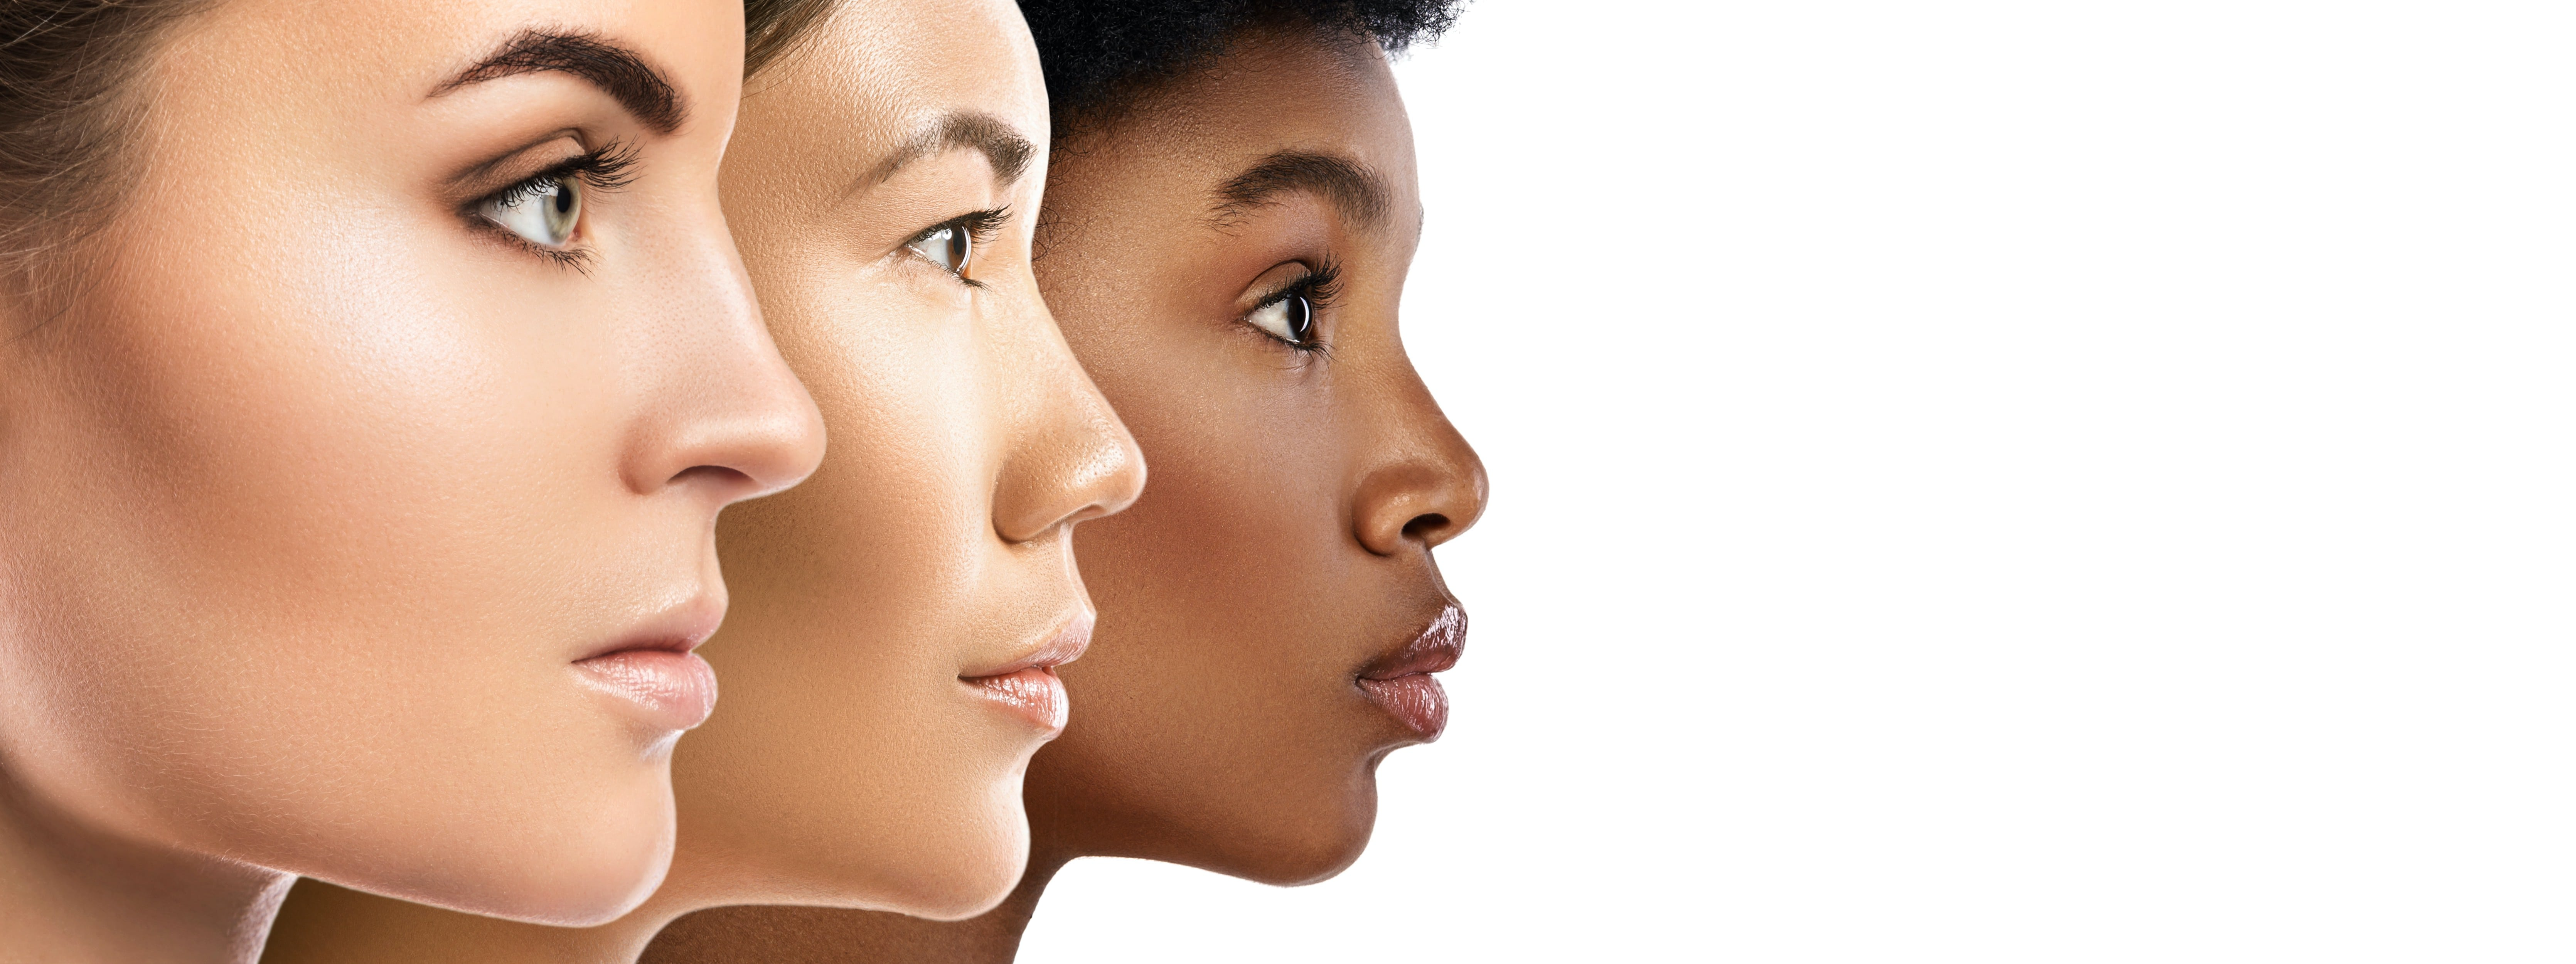 This is a photo of three womans with different skin color . Their different ethnic skins origins symbolize our various skin cells models for dermo-cosmetic industry.